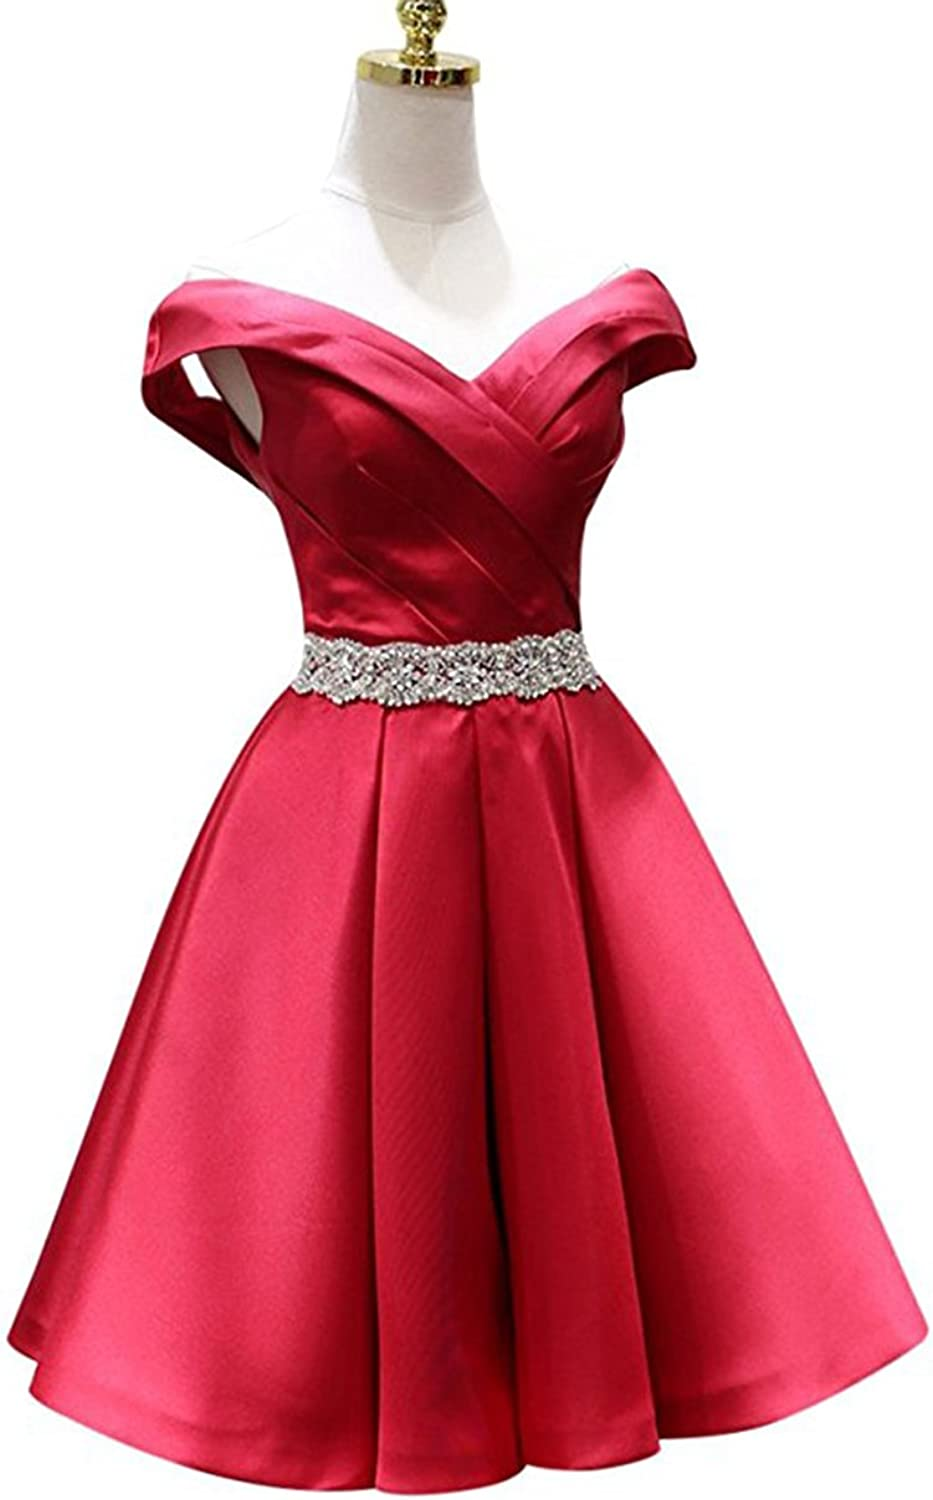 Alilith Z Sexy Off The Shoulder A Line Homecoming Prom Dresses Appliques Short